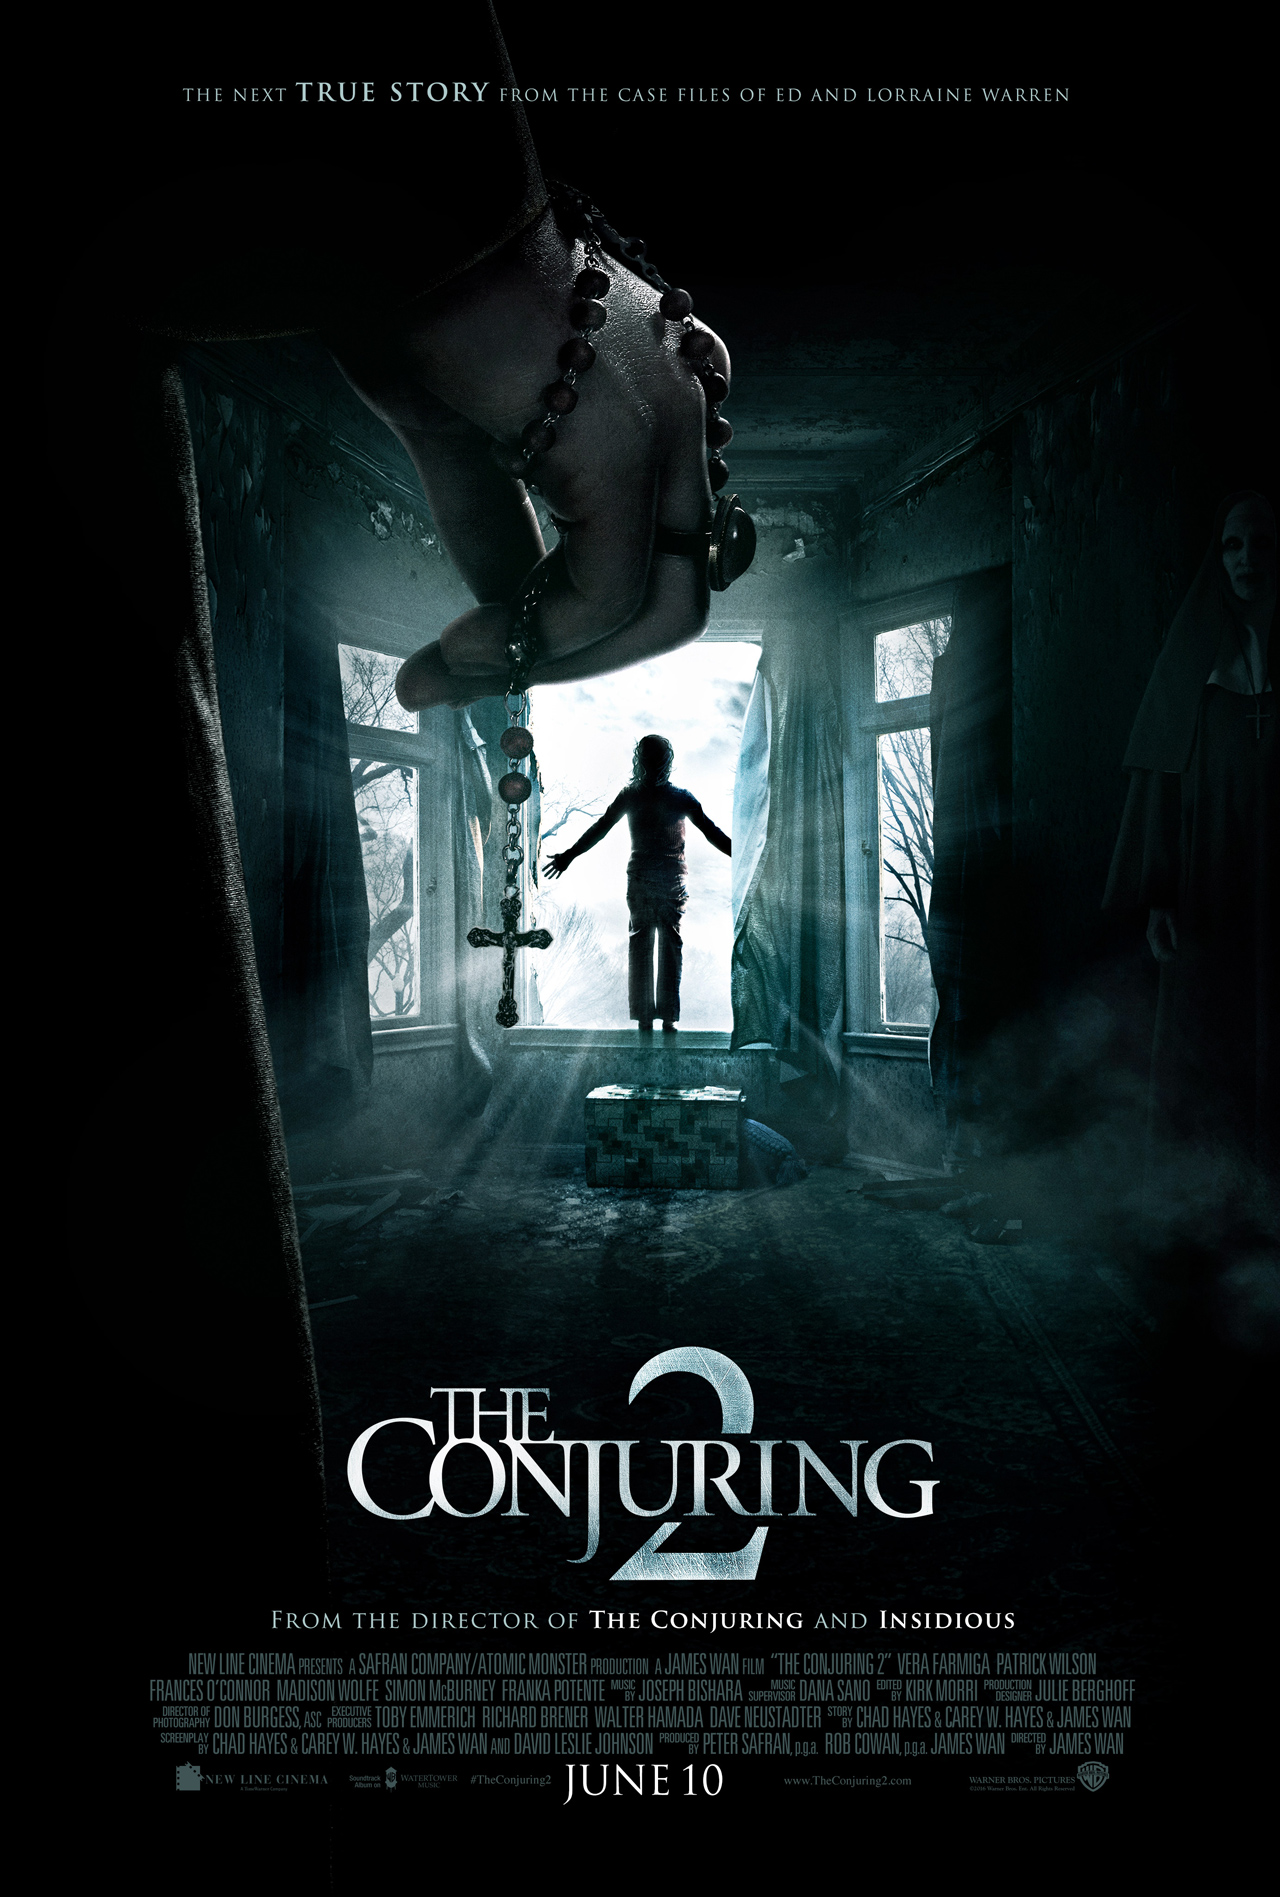 Witness Strange Happenings in Enfield in New The Conjuring 2 Featurette